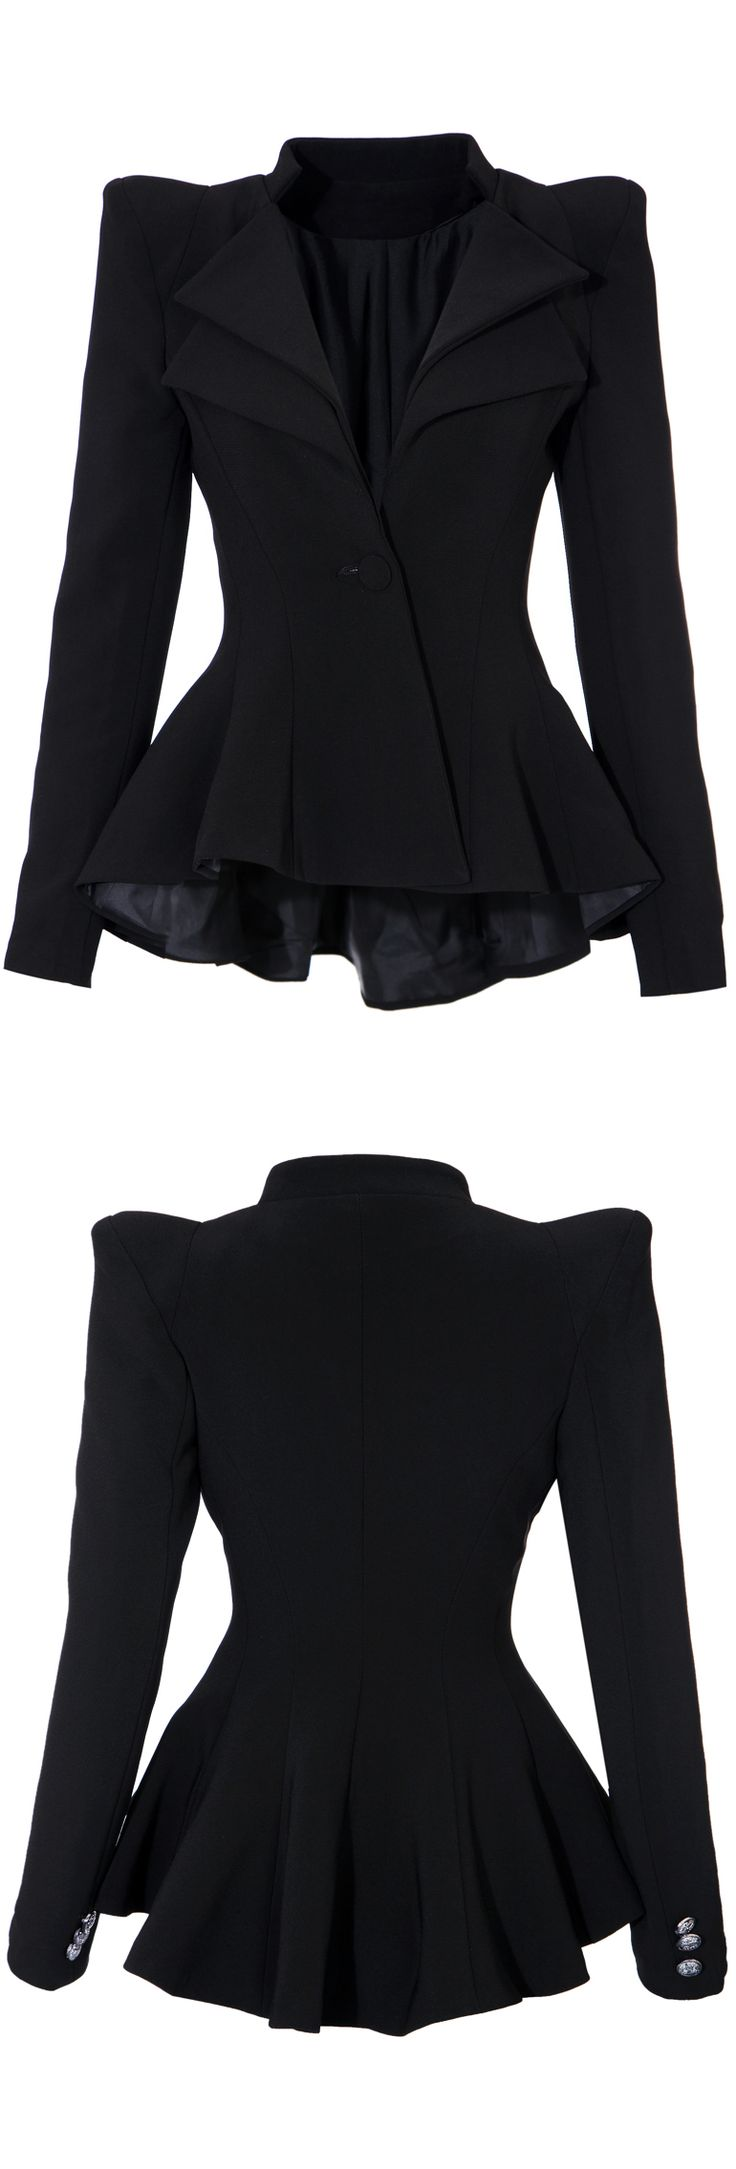 Ruffled Blazer since watching Penny Dreadful I'm into this kind of clothes